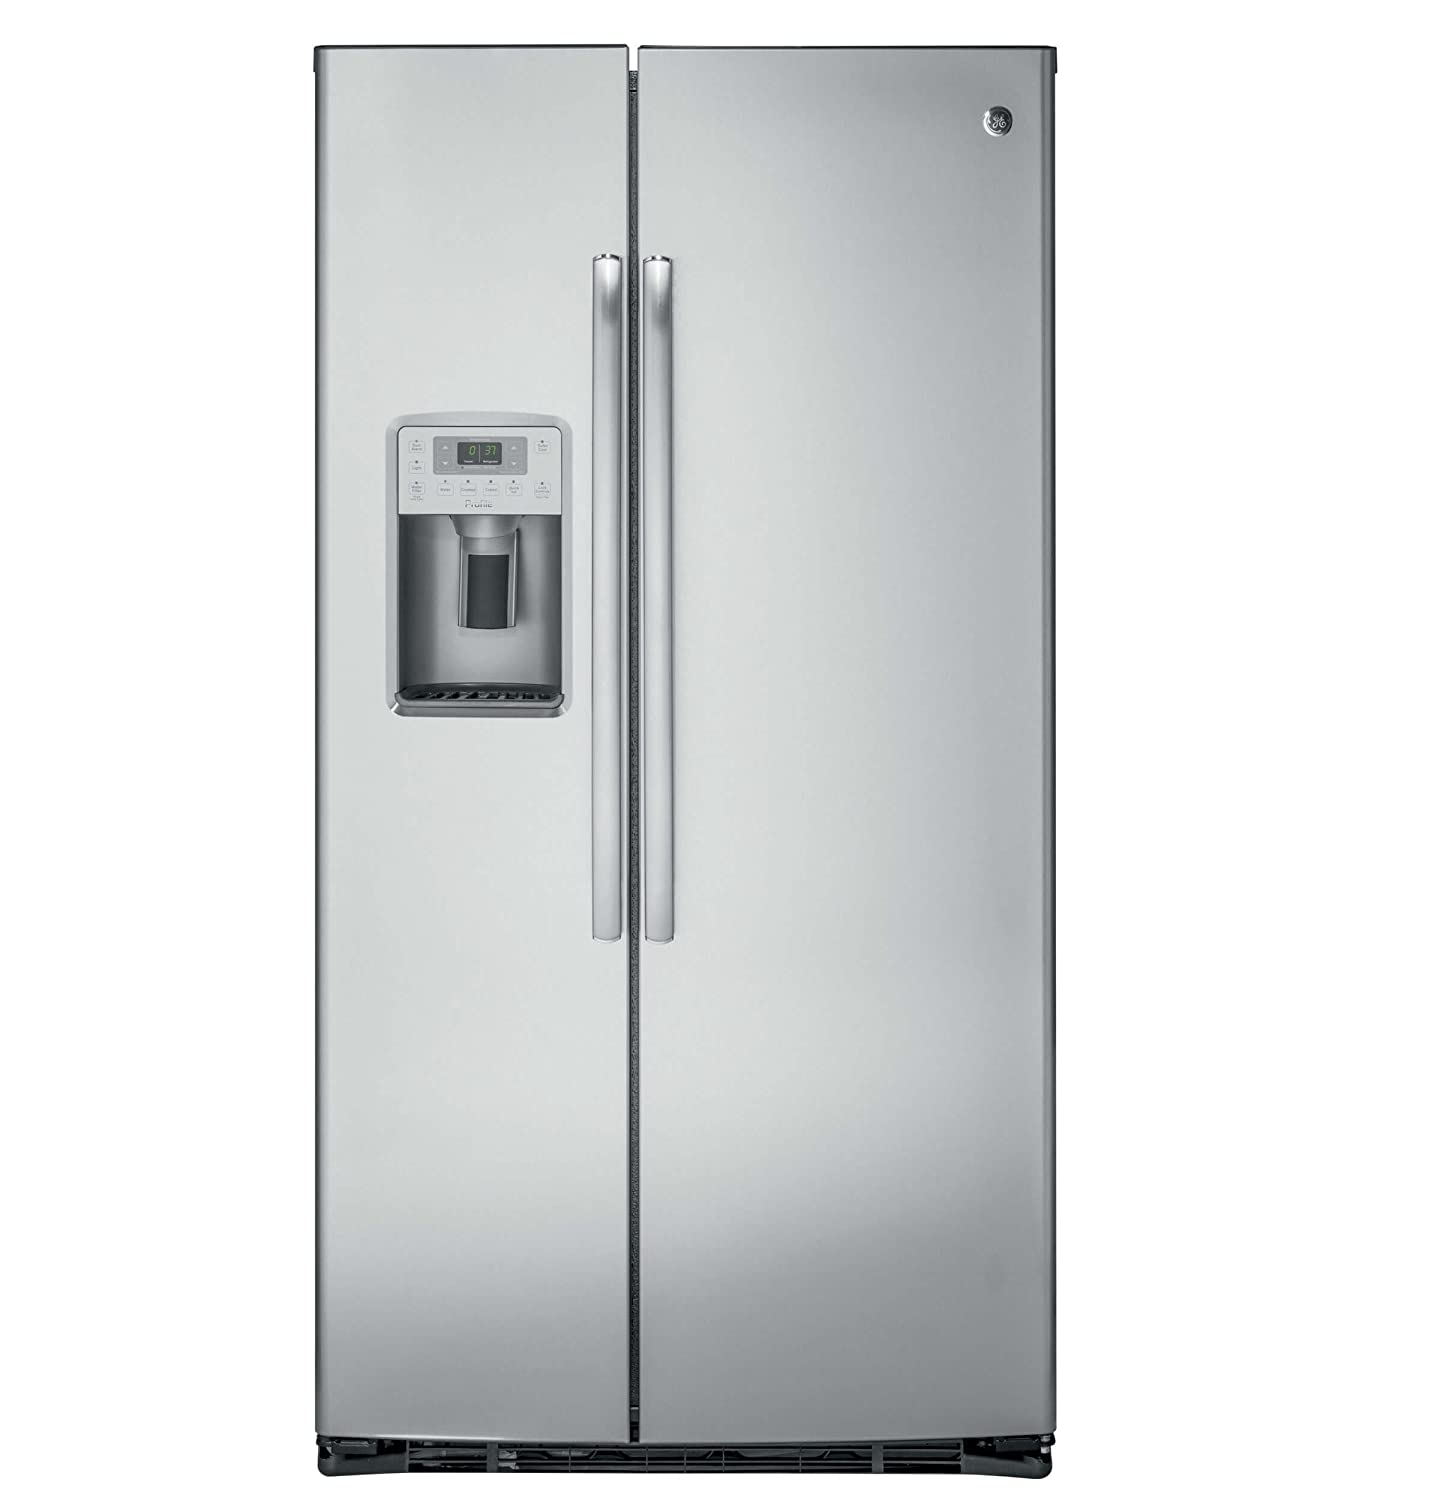 GE PZS22MSKSS Profile 22.1 Cu. Ft. Stainless Steel Side-By-Side Counter Depth Refrigerator